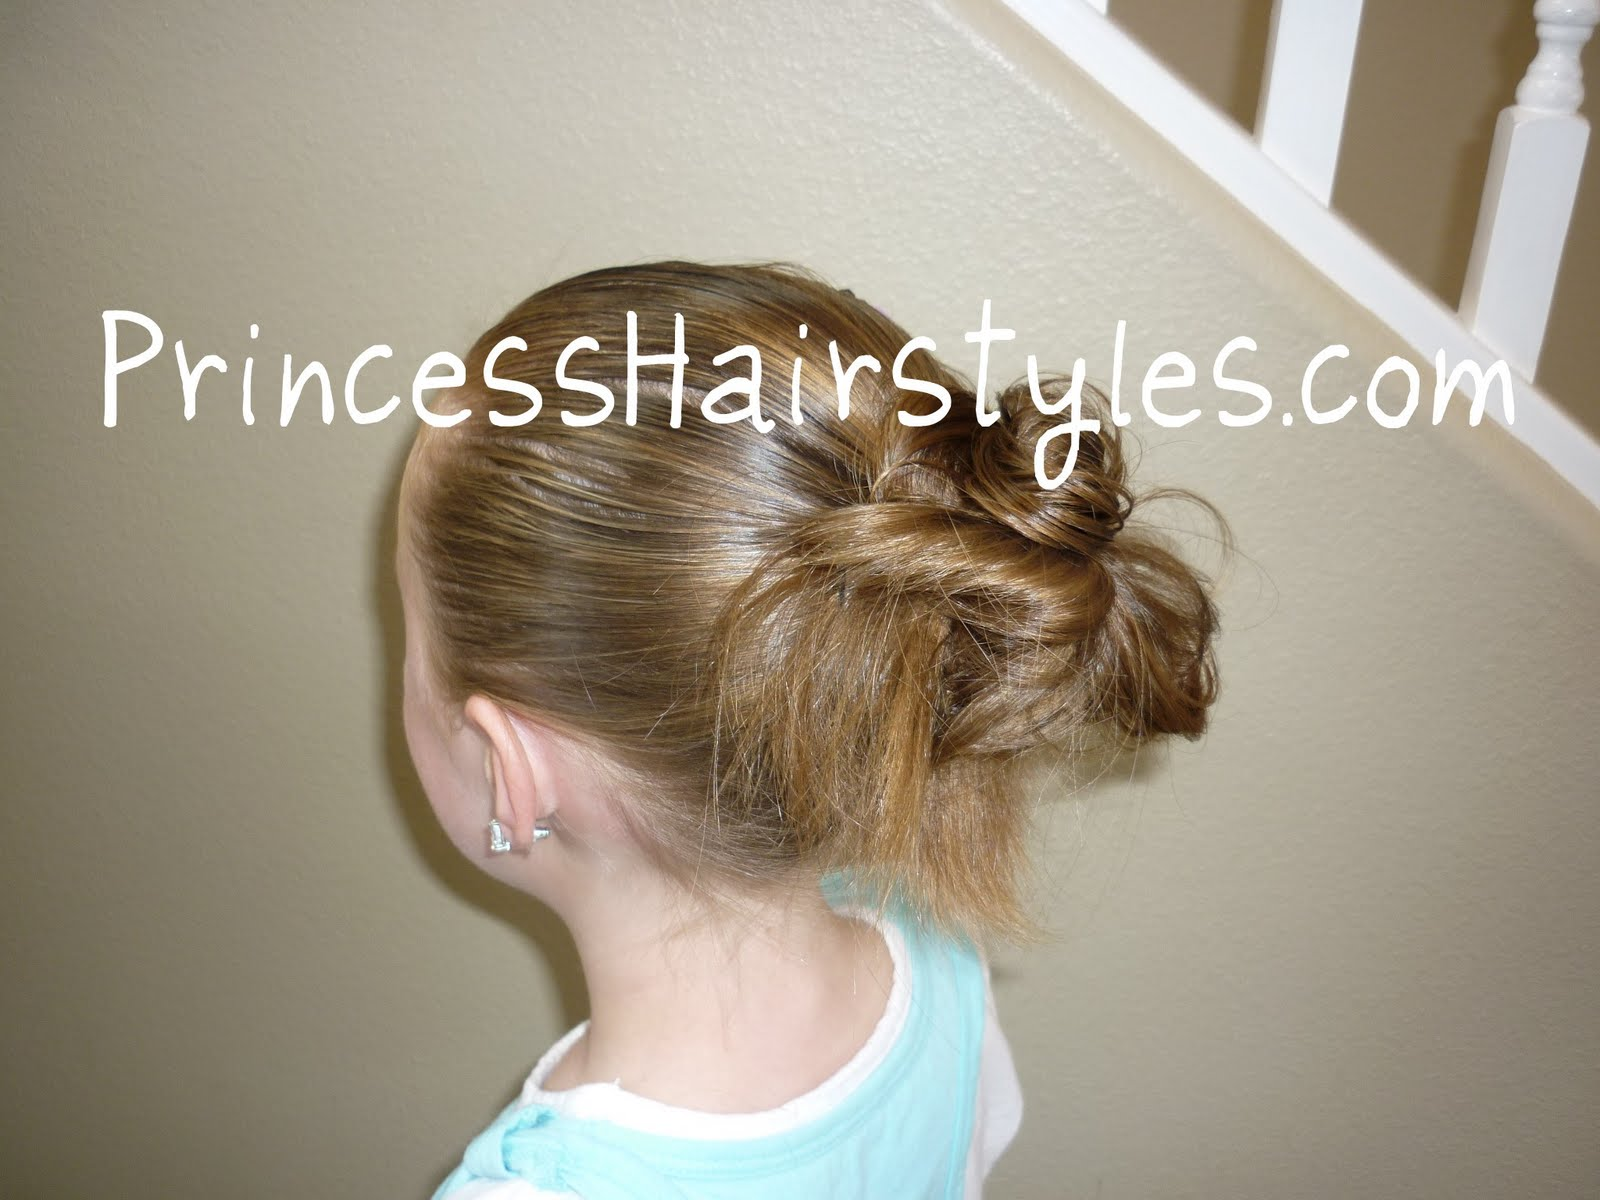 How To Make A Messy Bun Hairstyles For Girls Princess Hairstyles